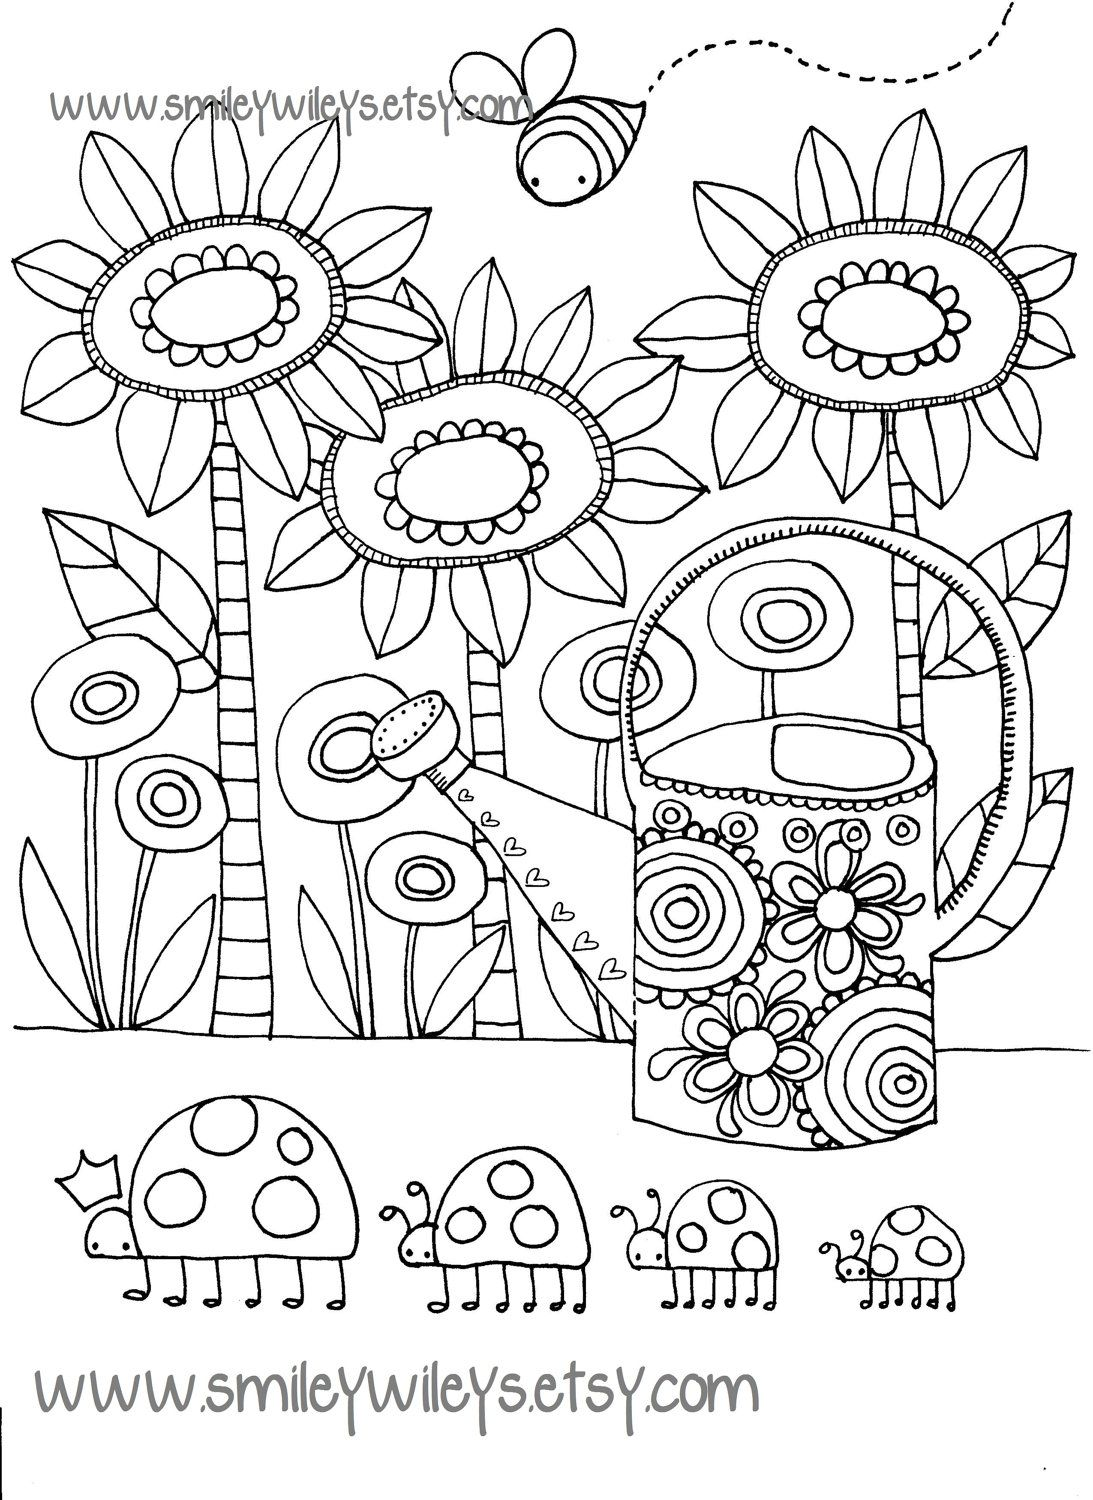 Happy Garden Printable Colouring Book Pages Set Of 5 Different Pages Coloring Books Printable Coloring Book Printable Coloring